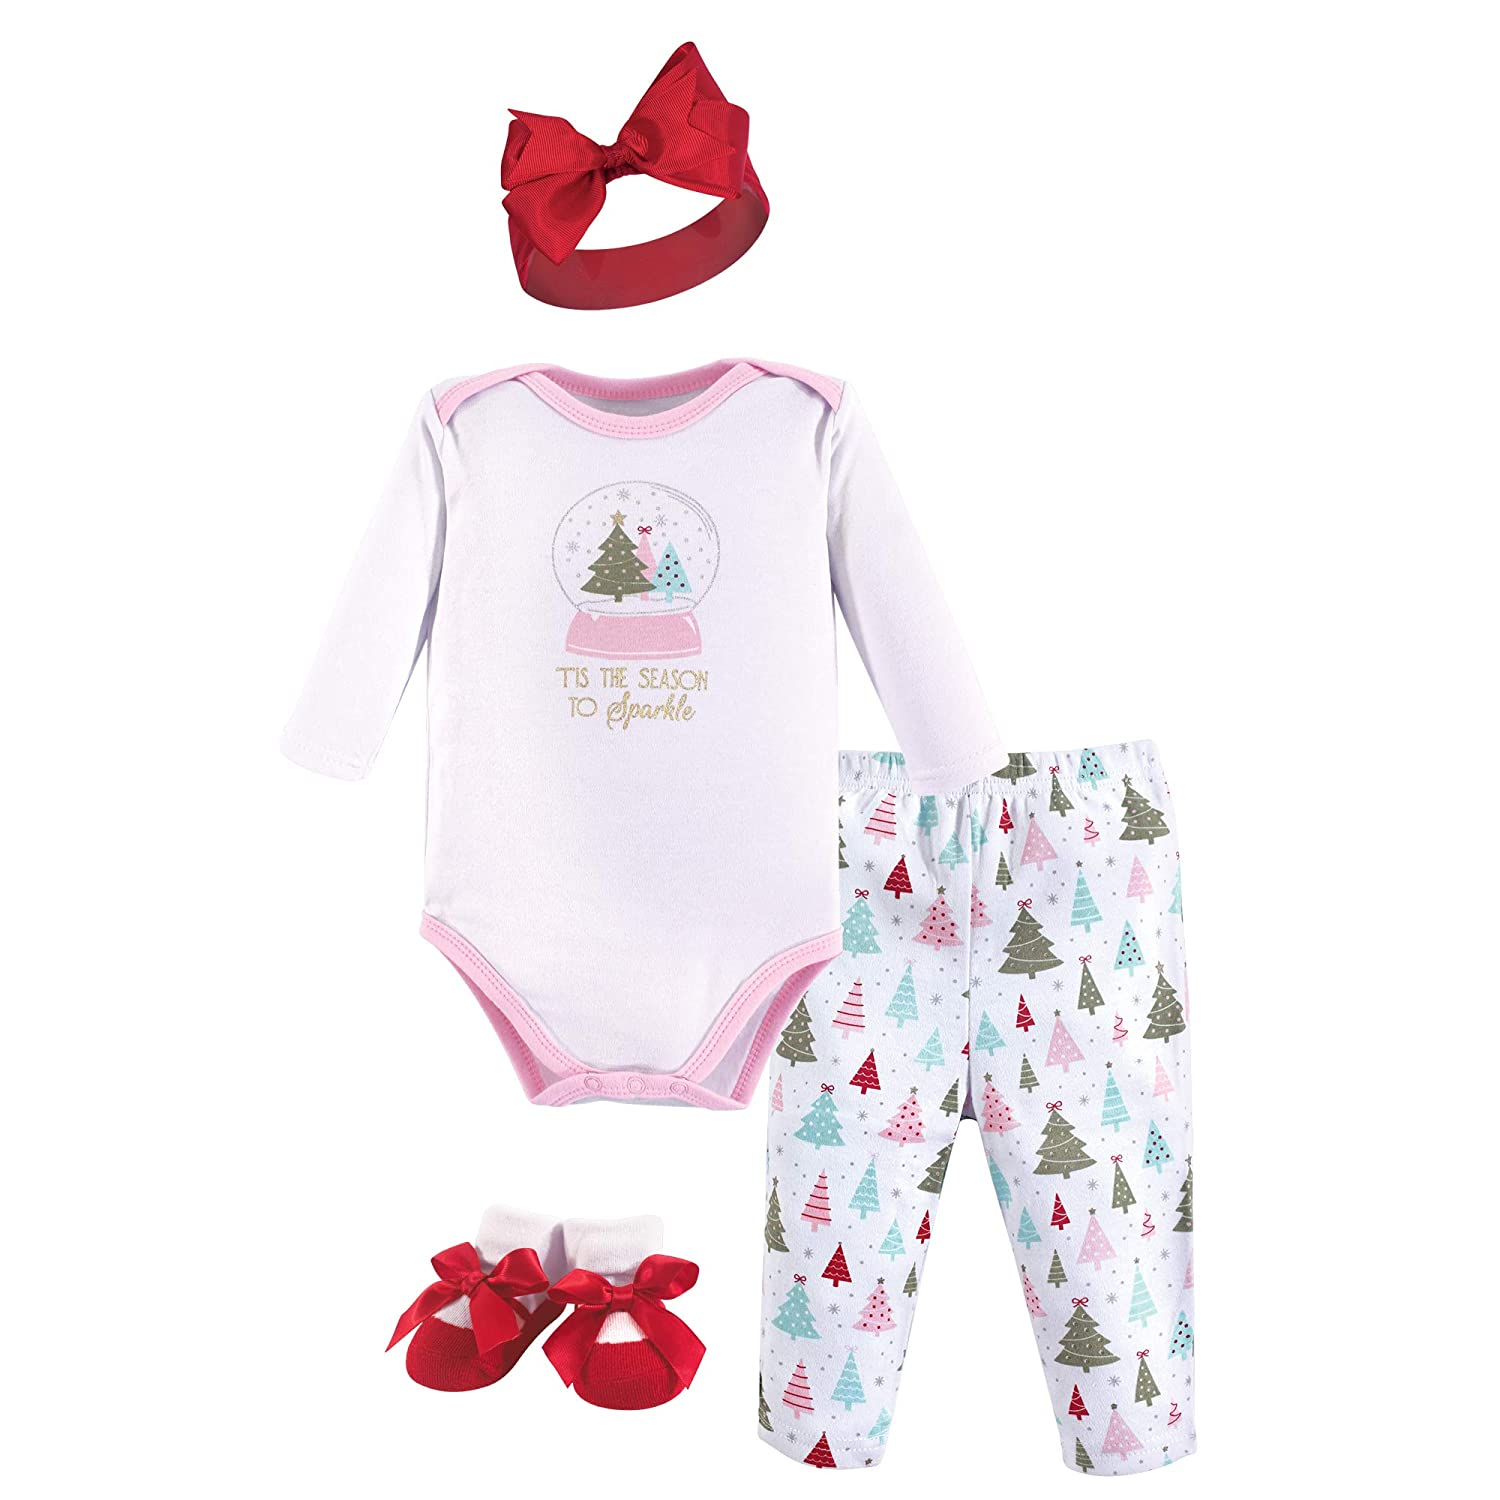 Hudson Baby Holiday Clothing Gift Set, 4 Piece 11156540